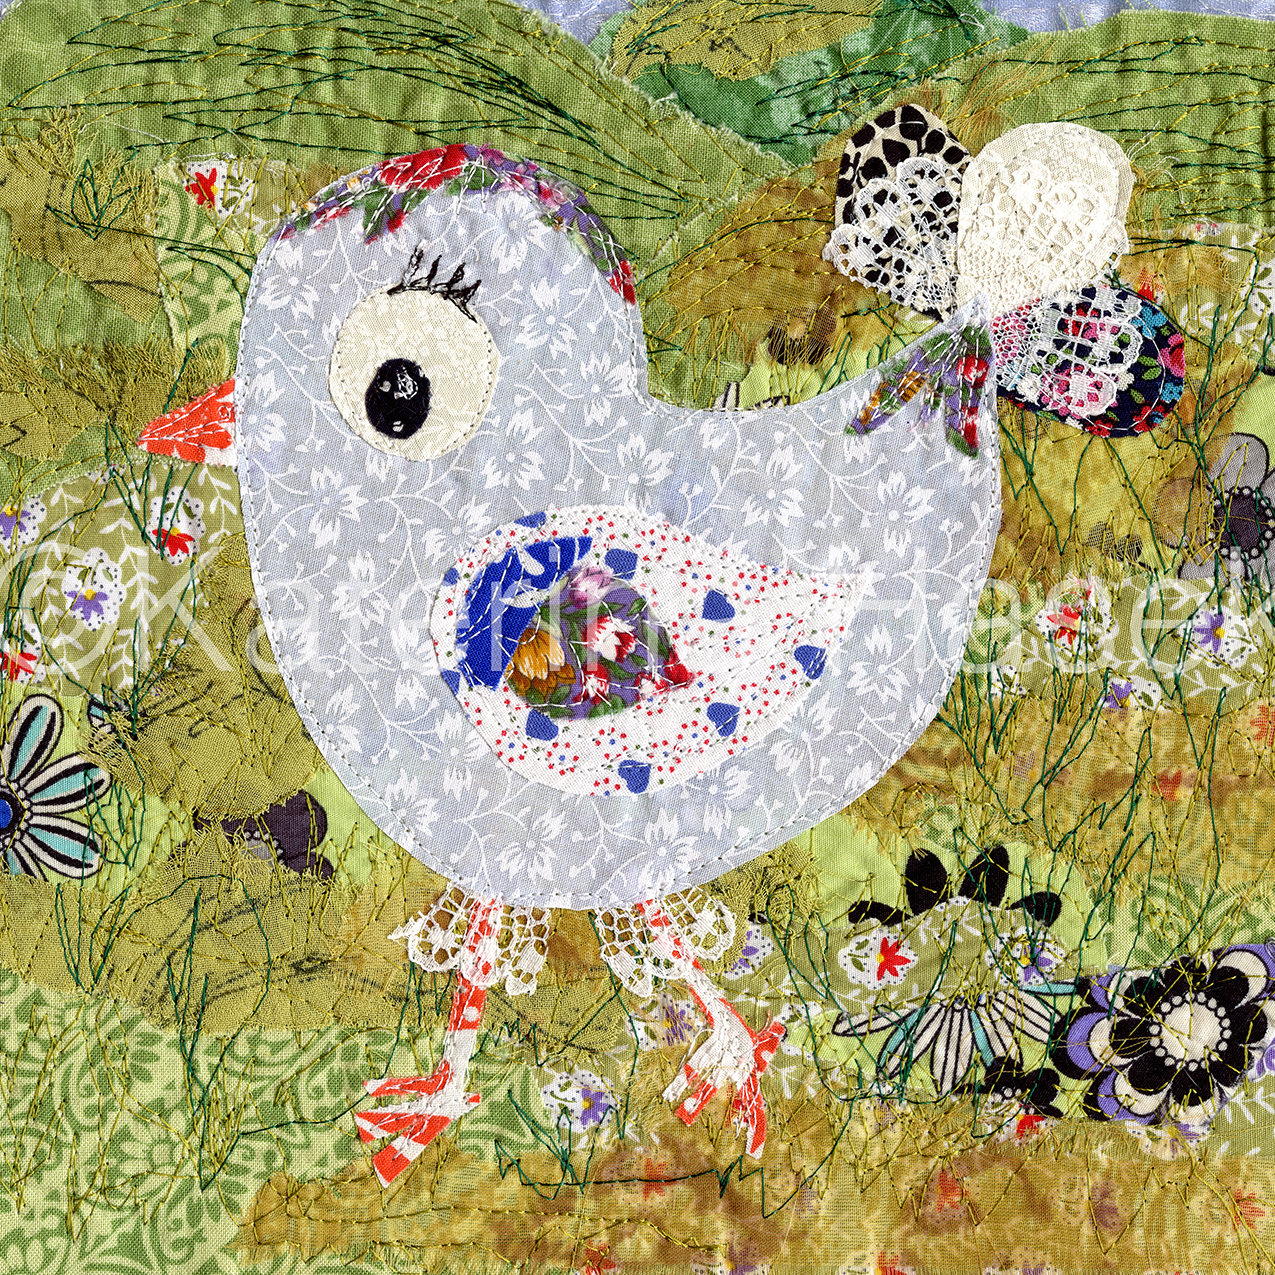 An applique image of little cartoon bird